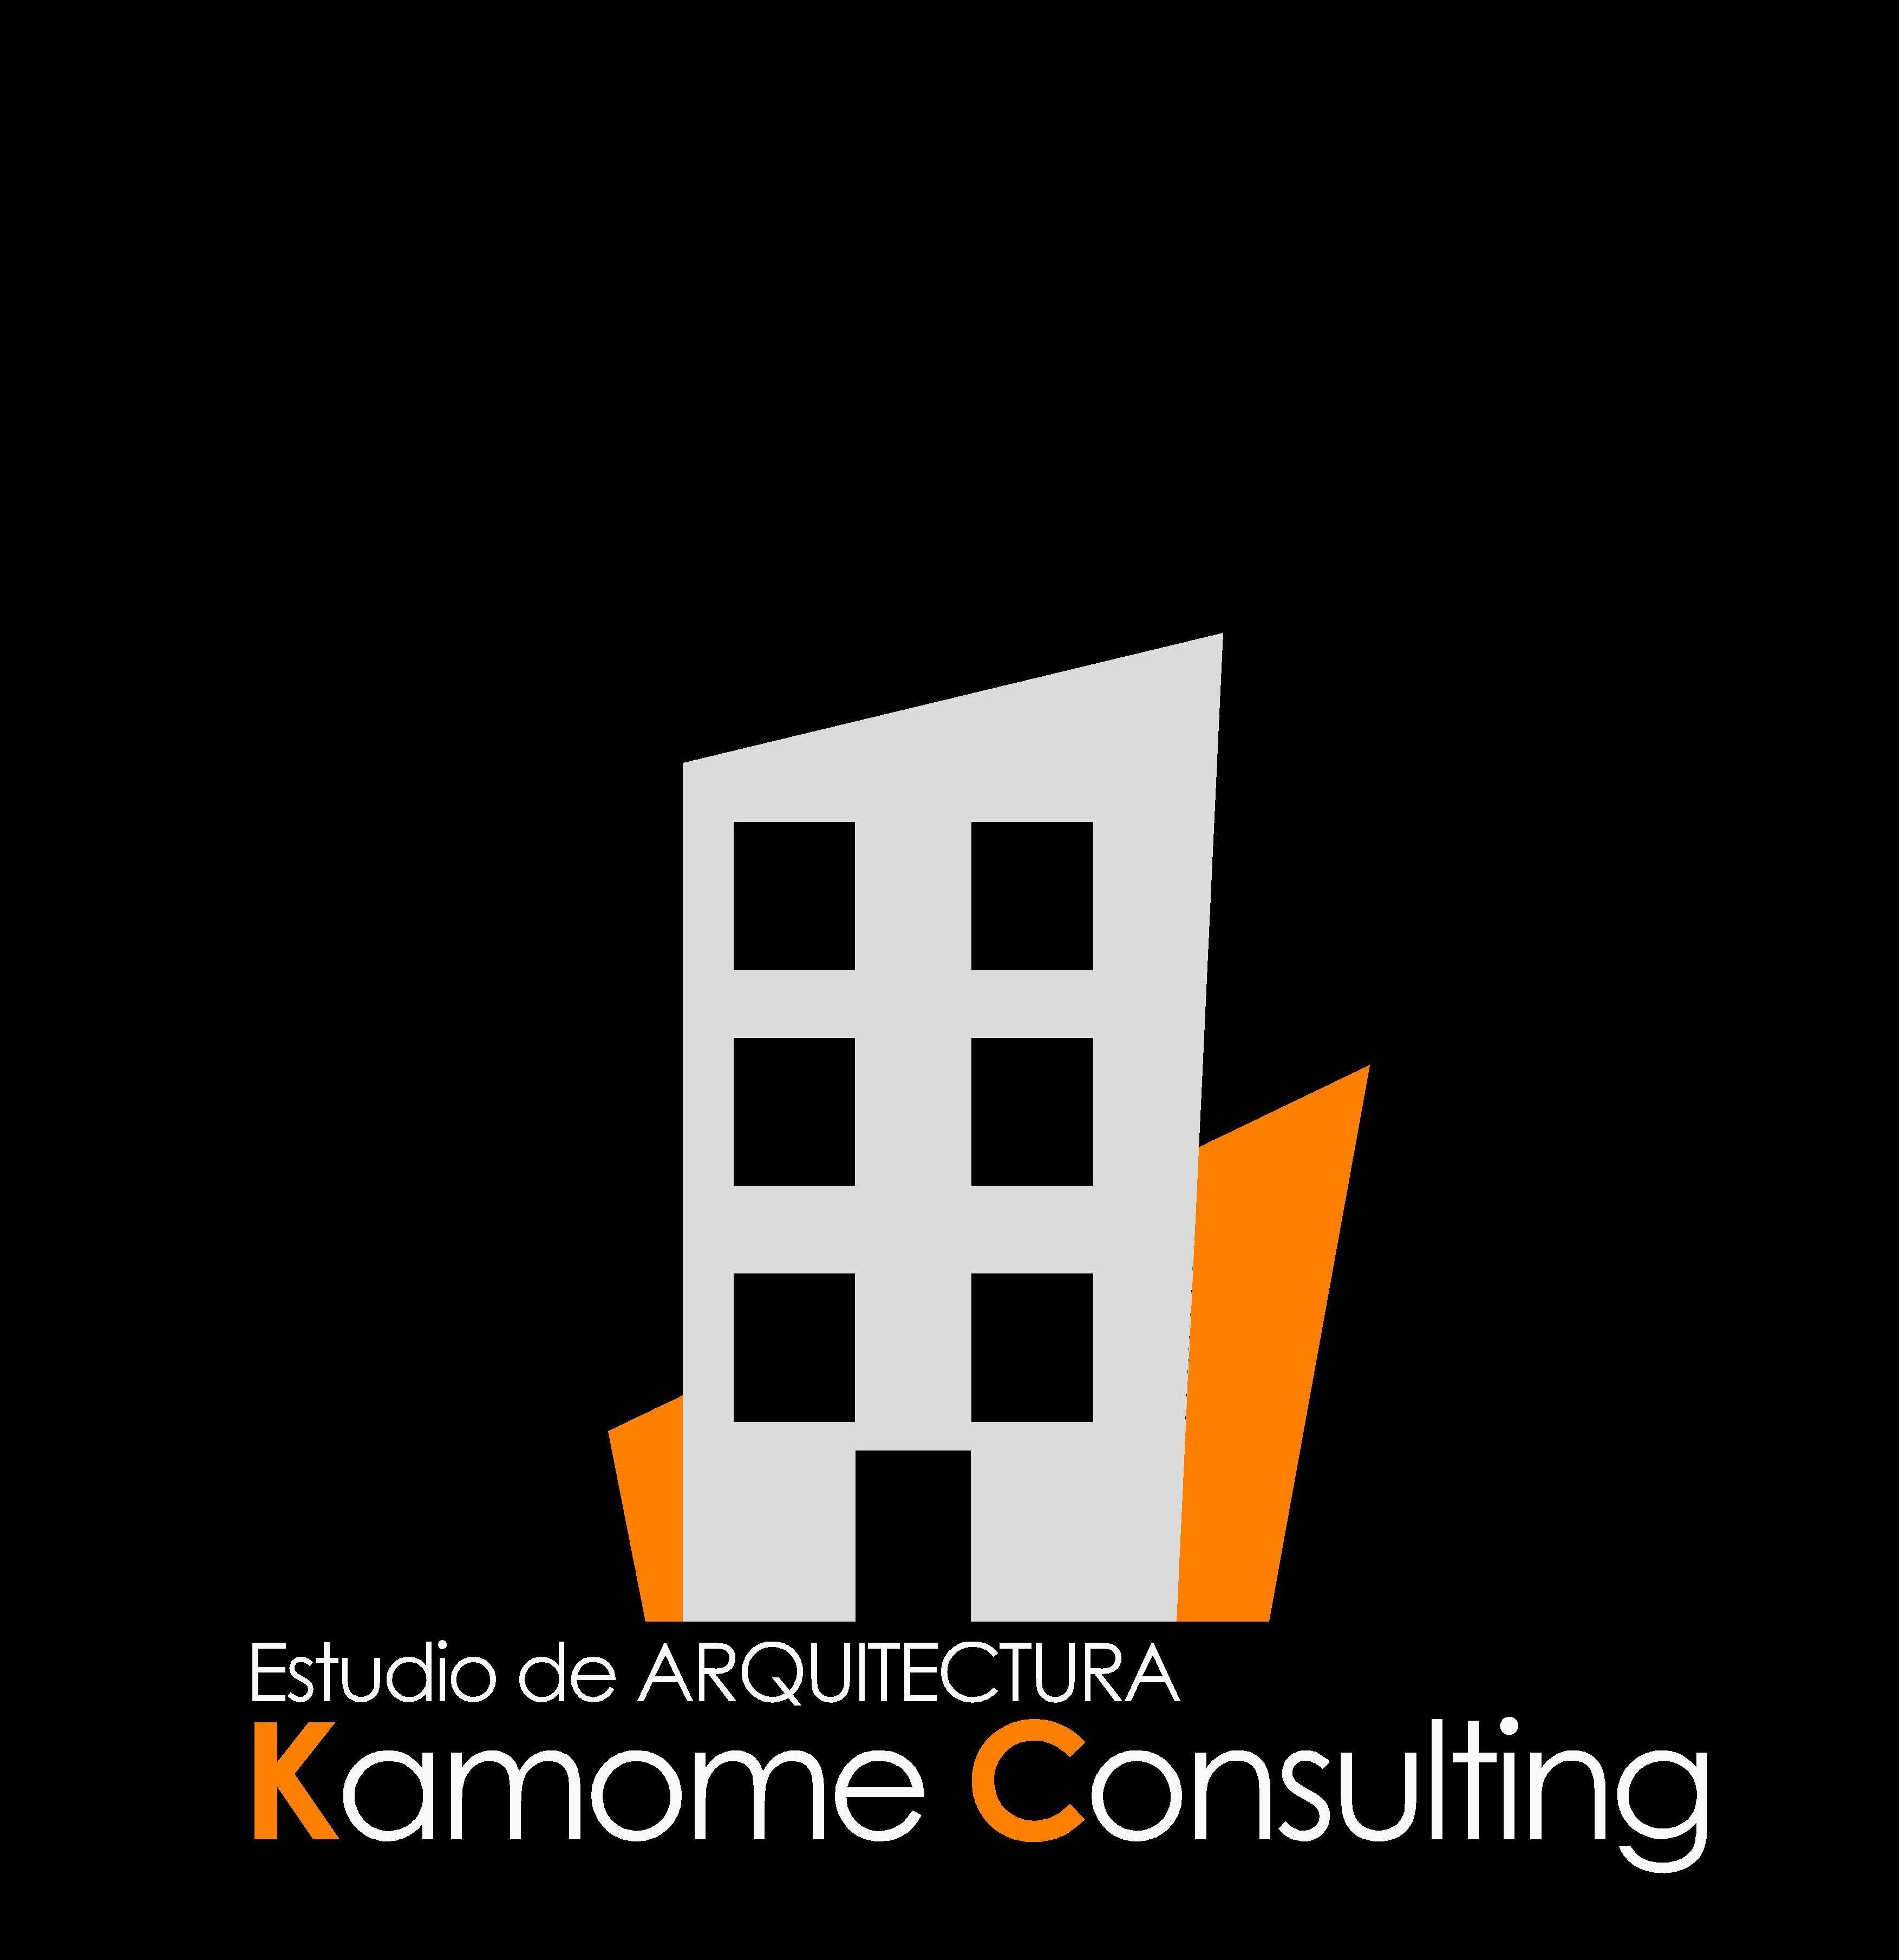 Kamome Consulting